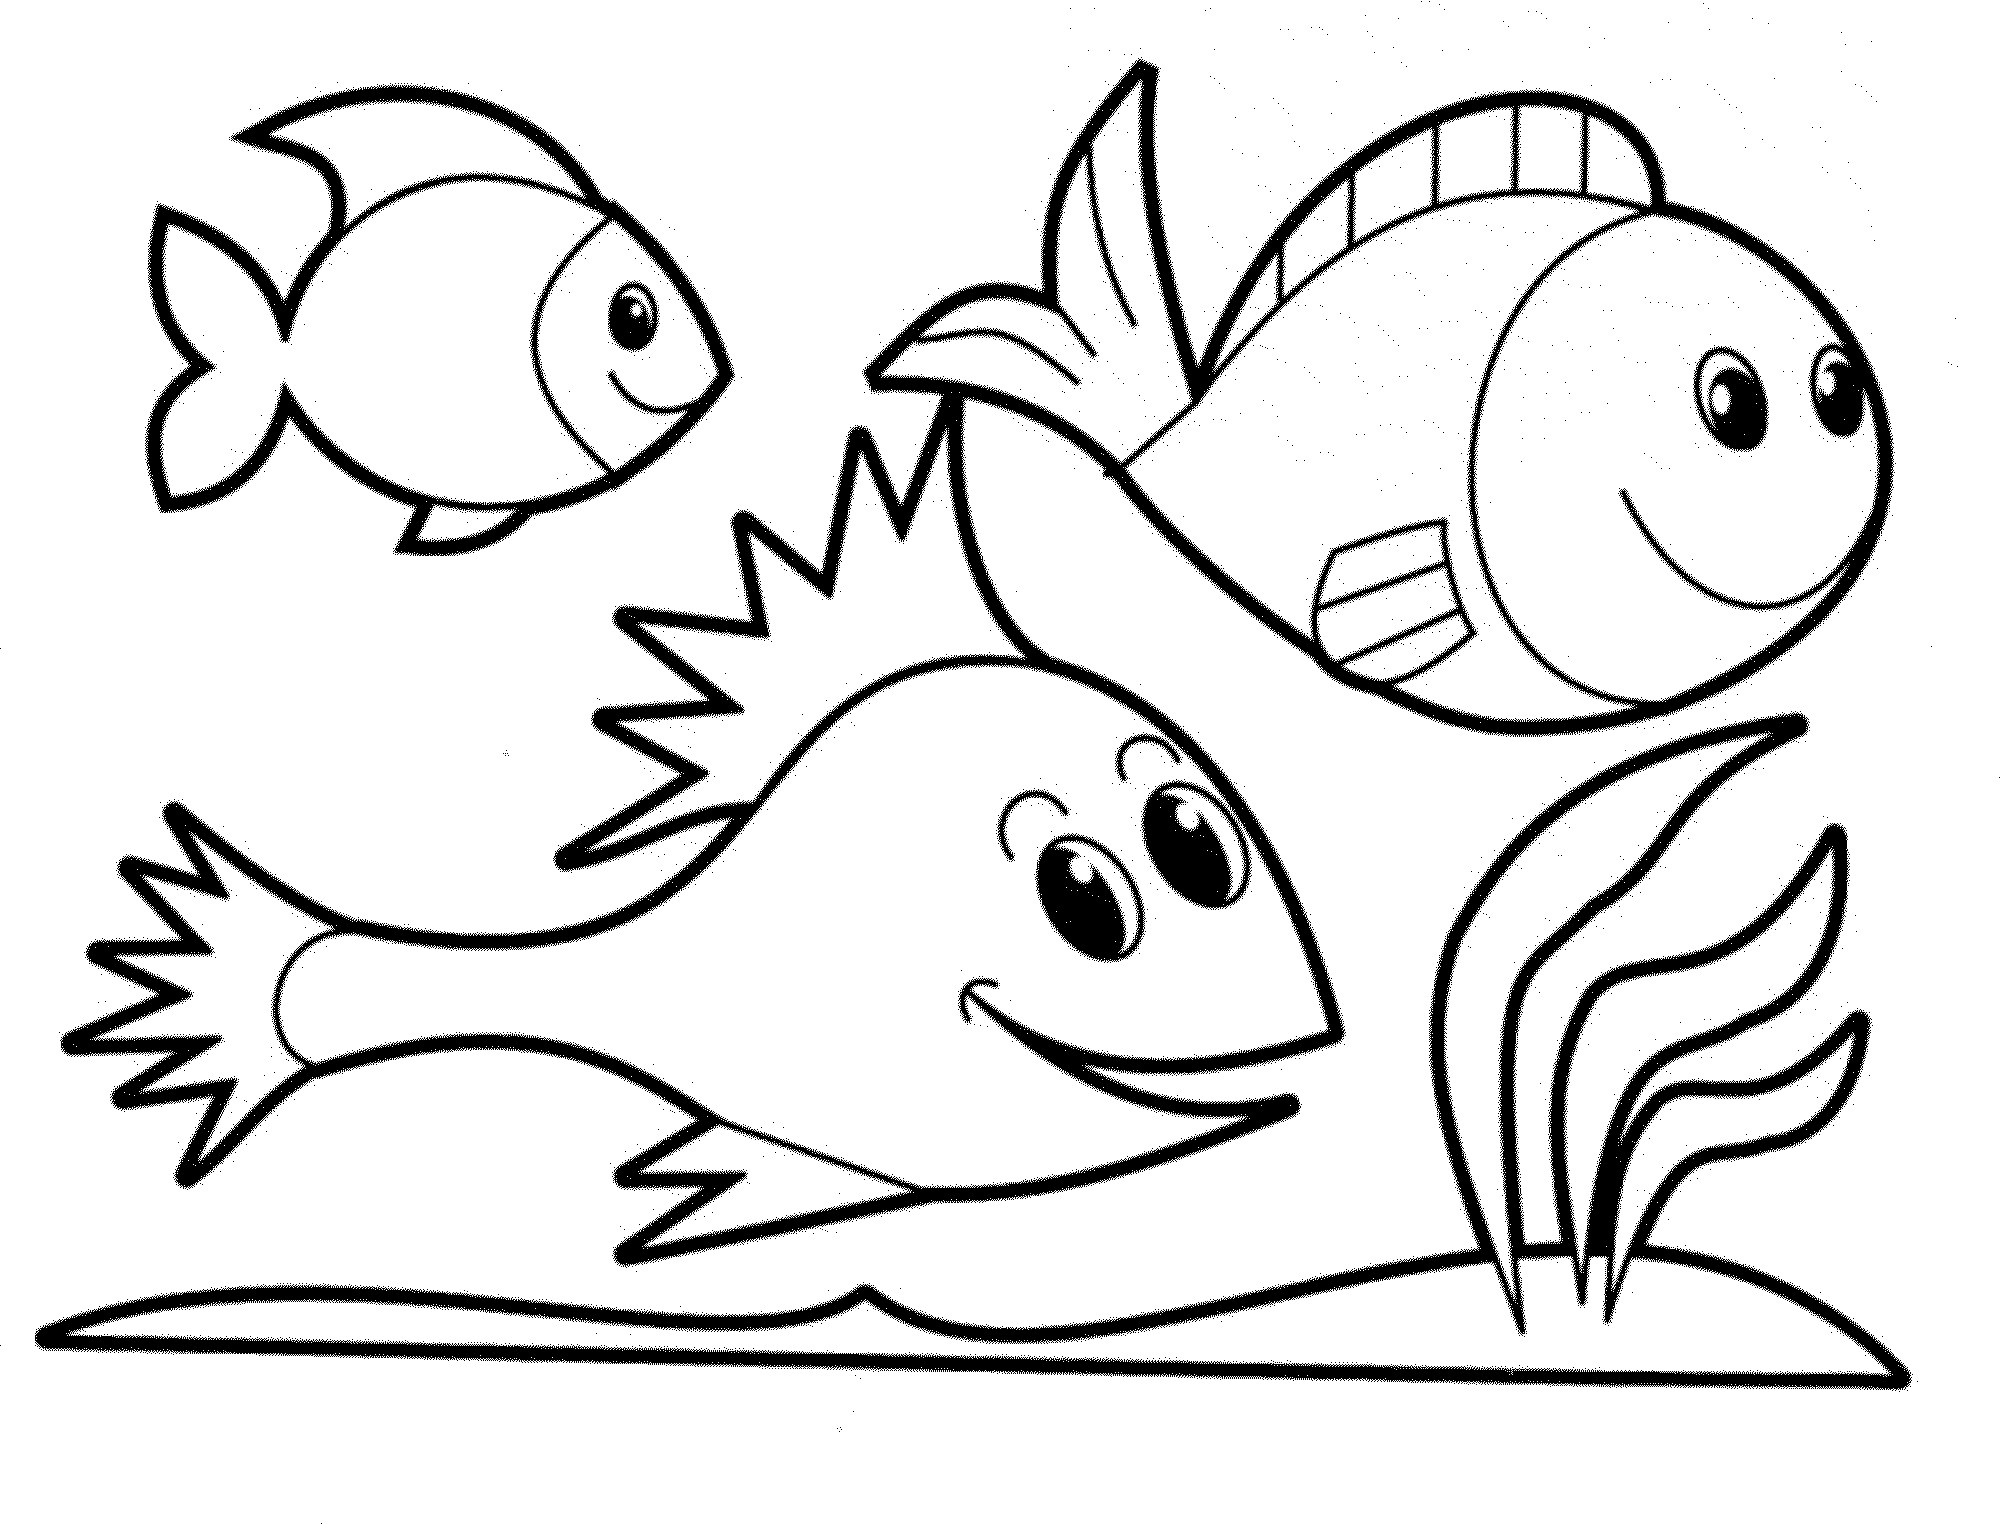 images of fish for colouring viper fish coloring pages at getcoloringscom free for of fish images colouring